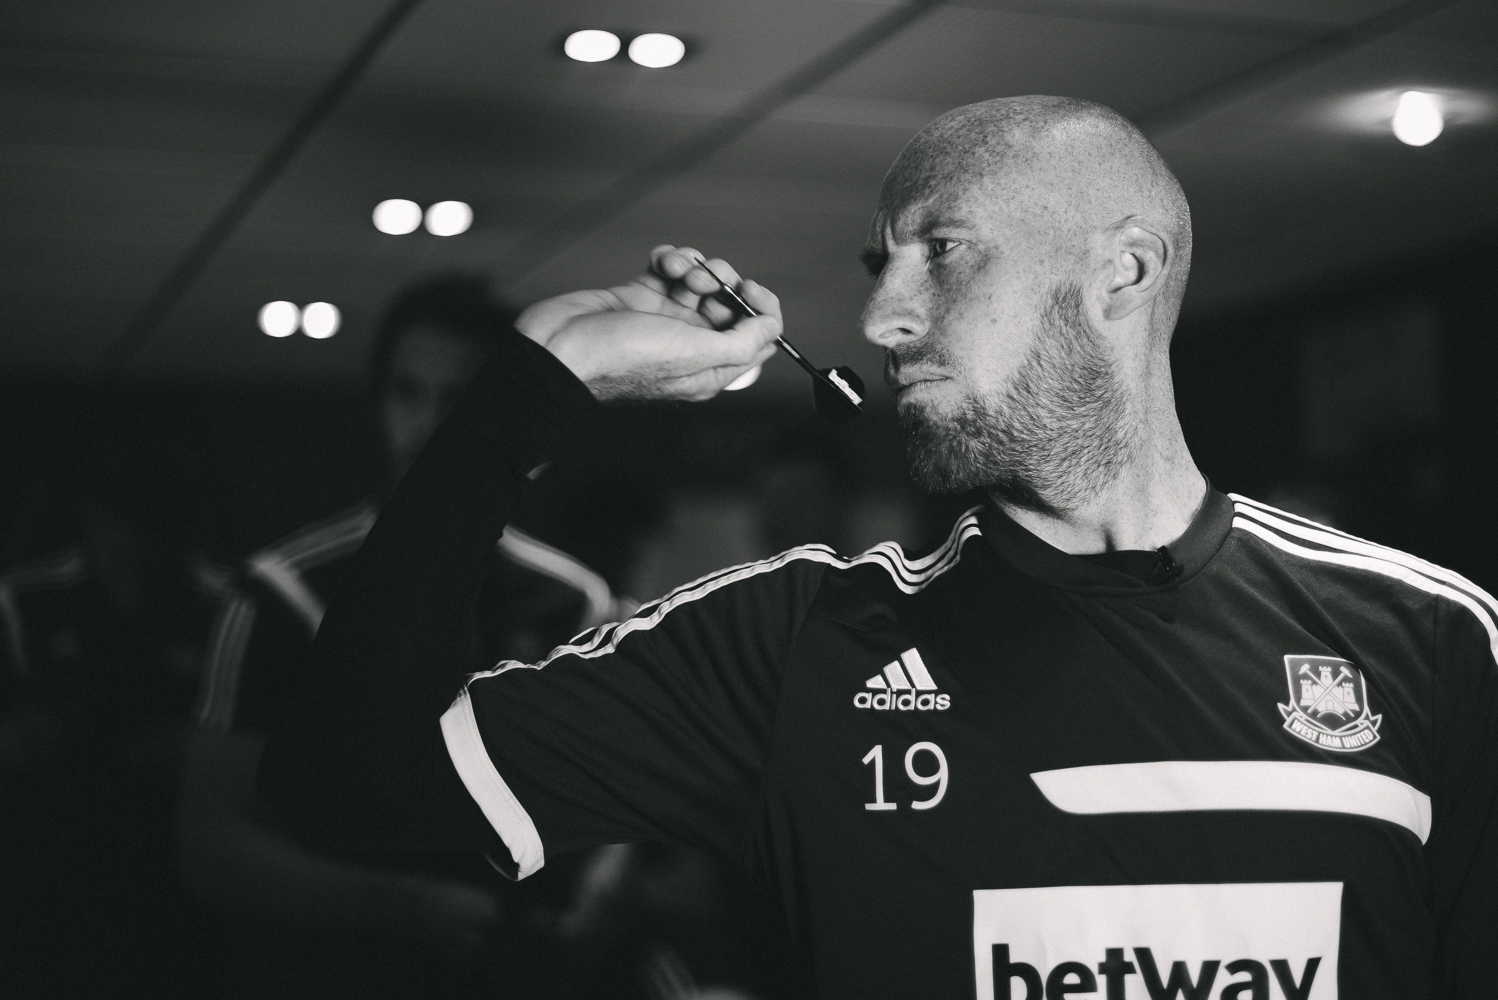 Betway_WestHam_Alex_Wallace_Photography_0114.jpg